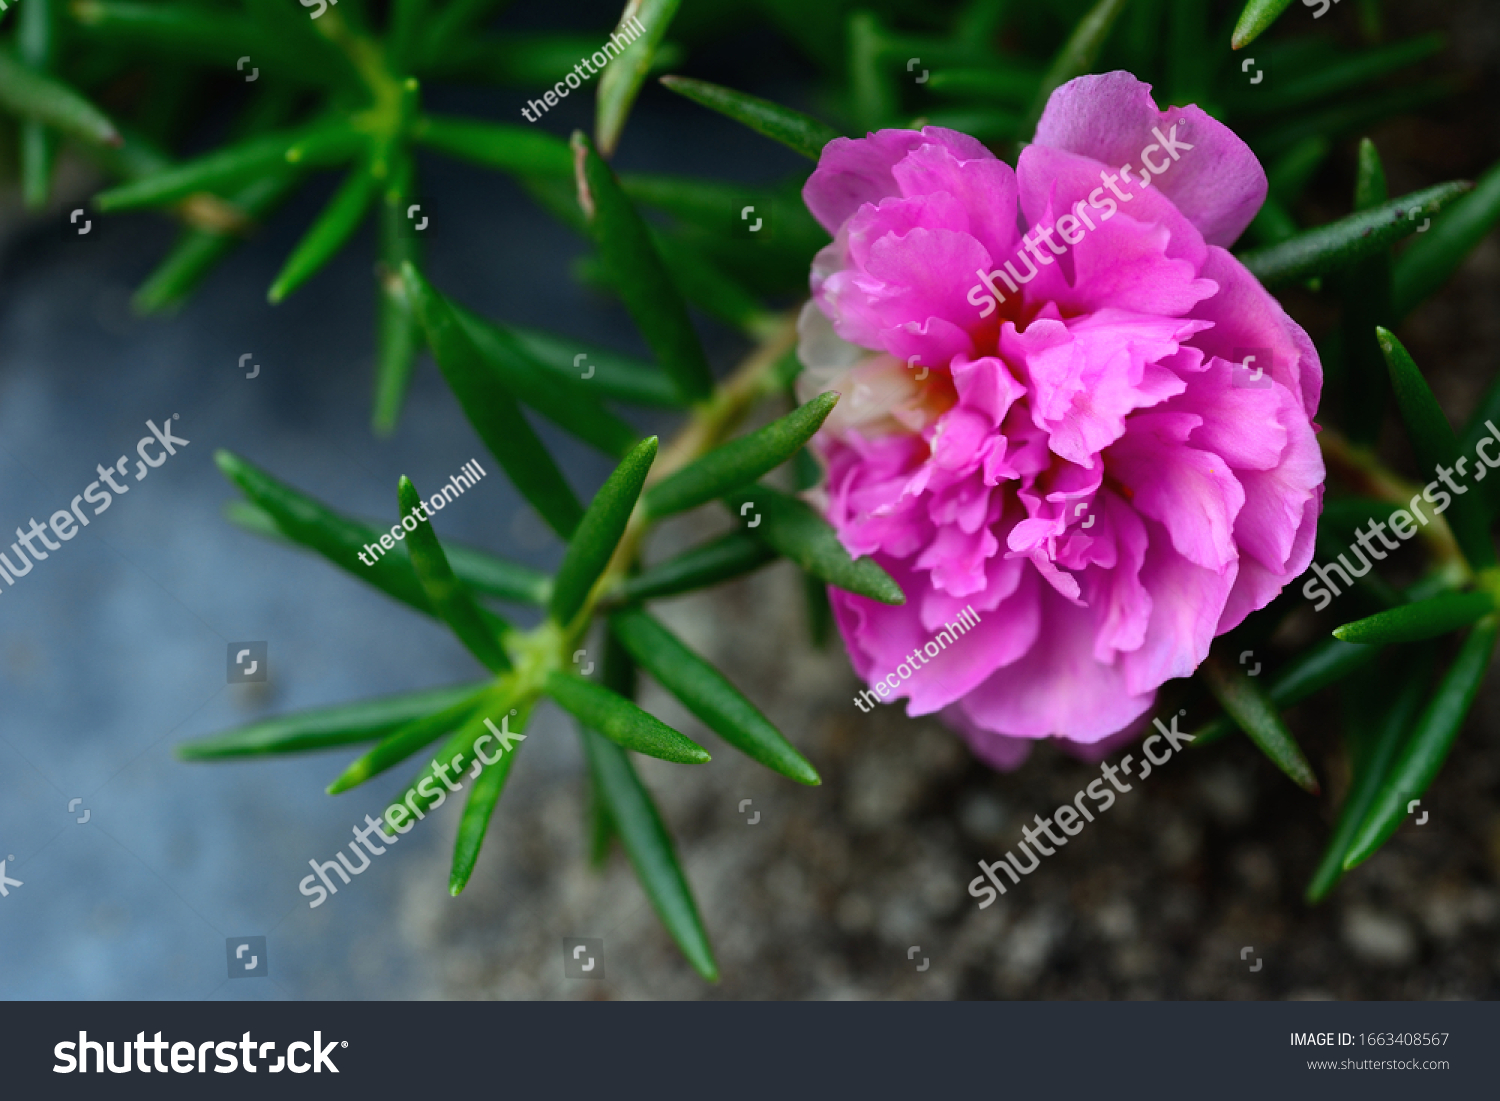 Rose Japanese Images Stock Photos Vectors Shutterstock